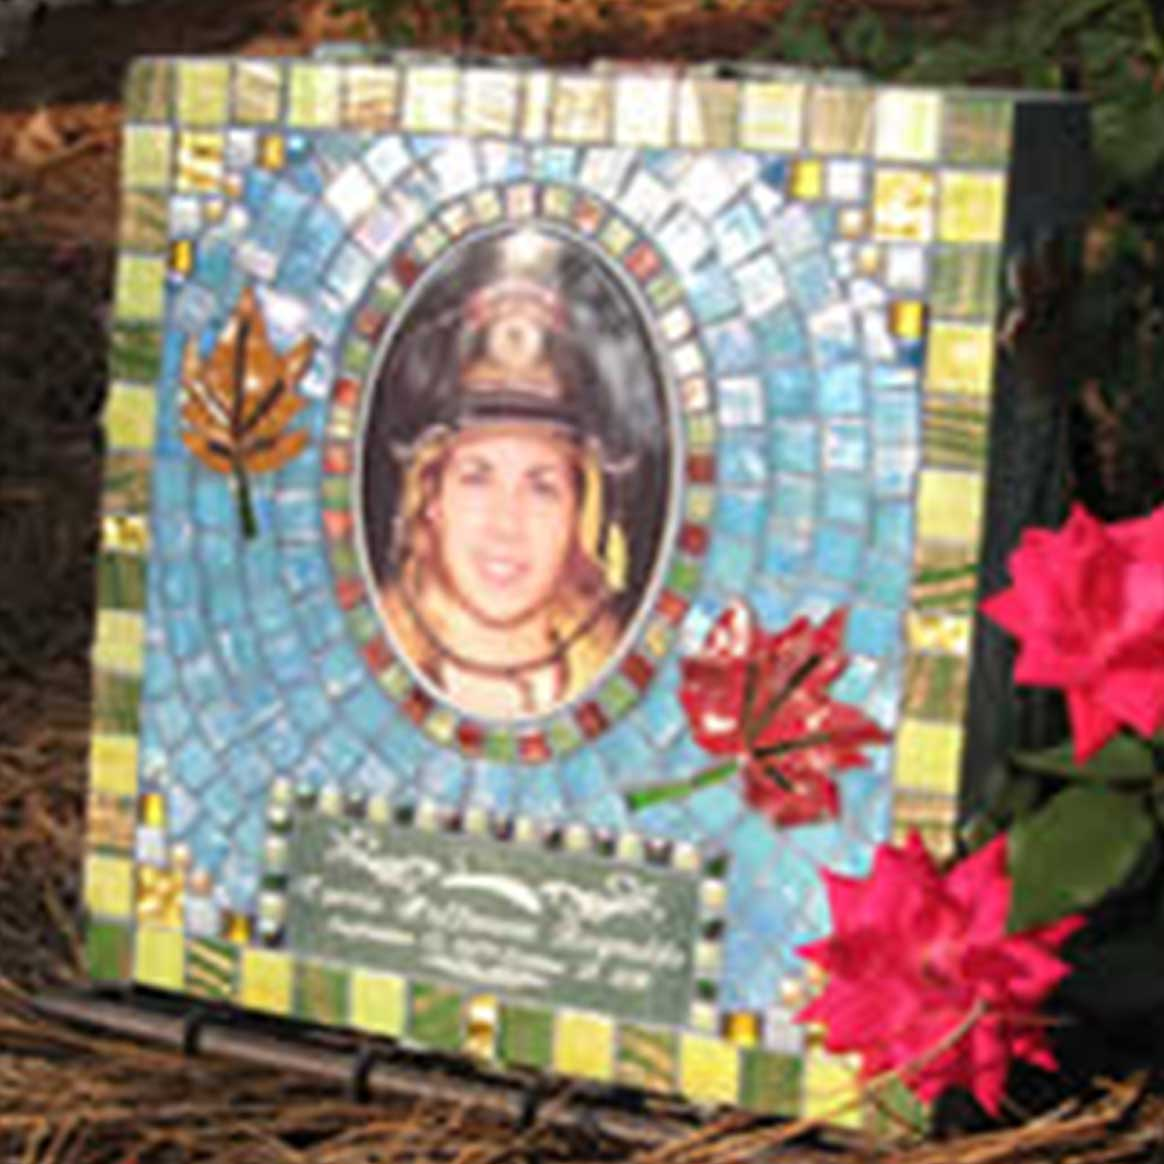 Mosaic Memorial Garden Art Stone of Firefighter by Water's End Studio Artist Linda Solby